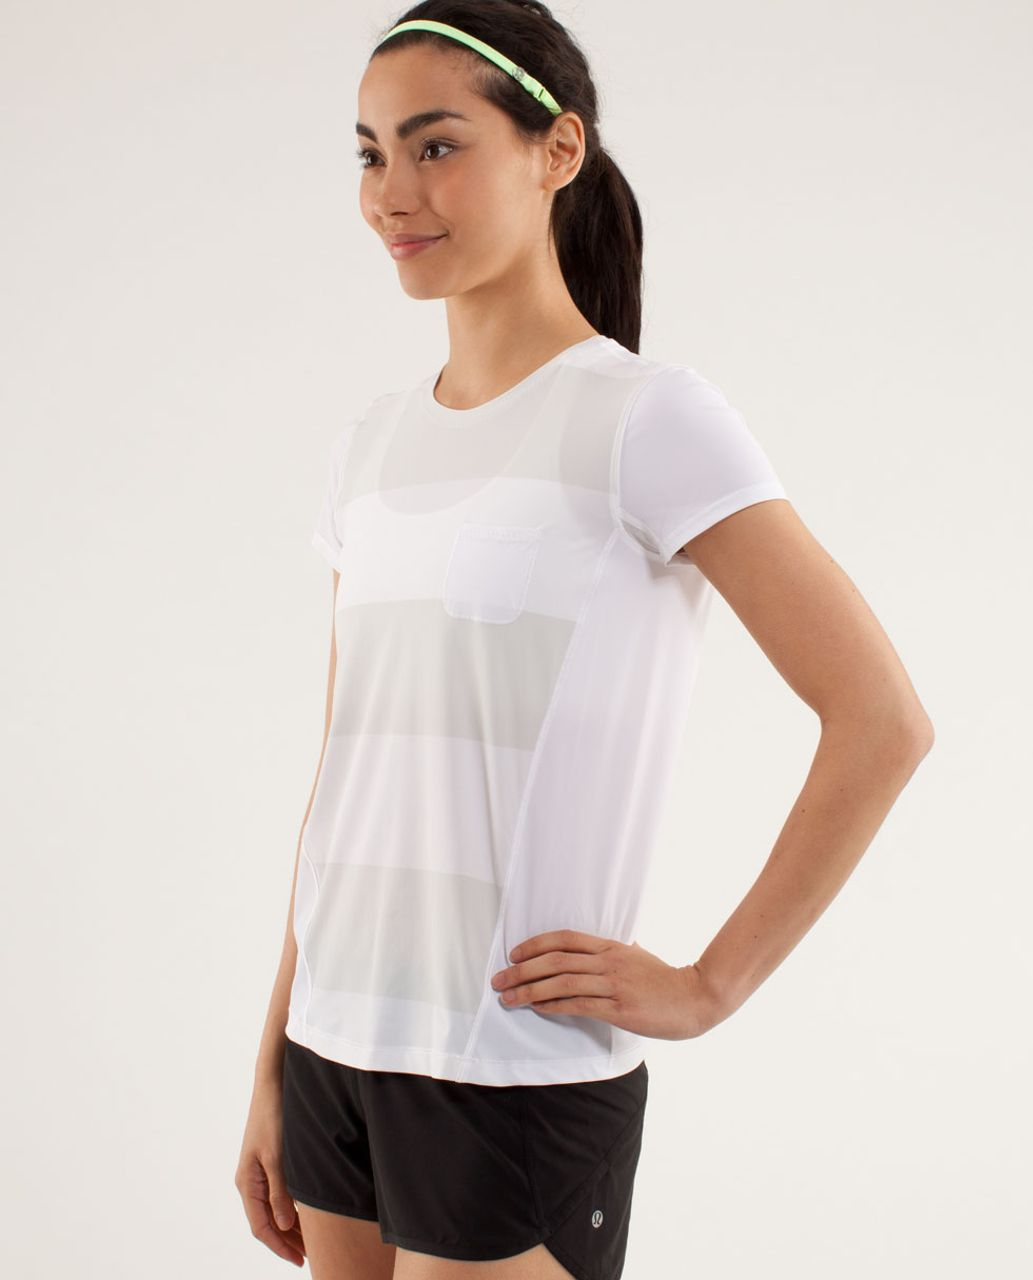 Lululemon Runbeam Short Sleeve - Bold Stripe Printed Nimbus / White